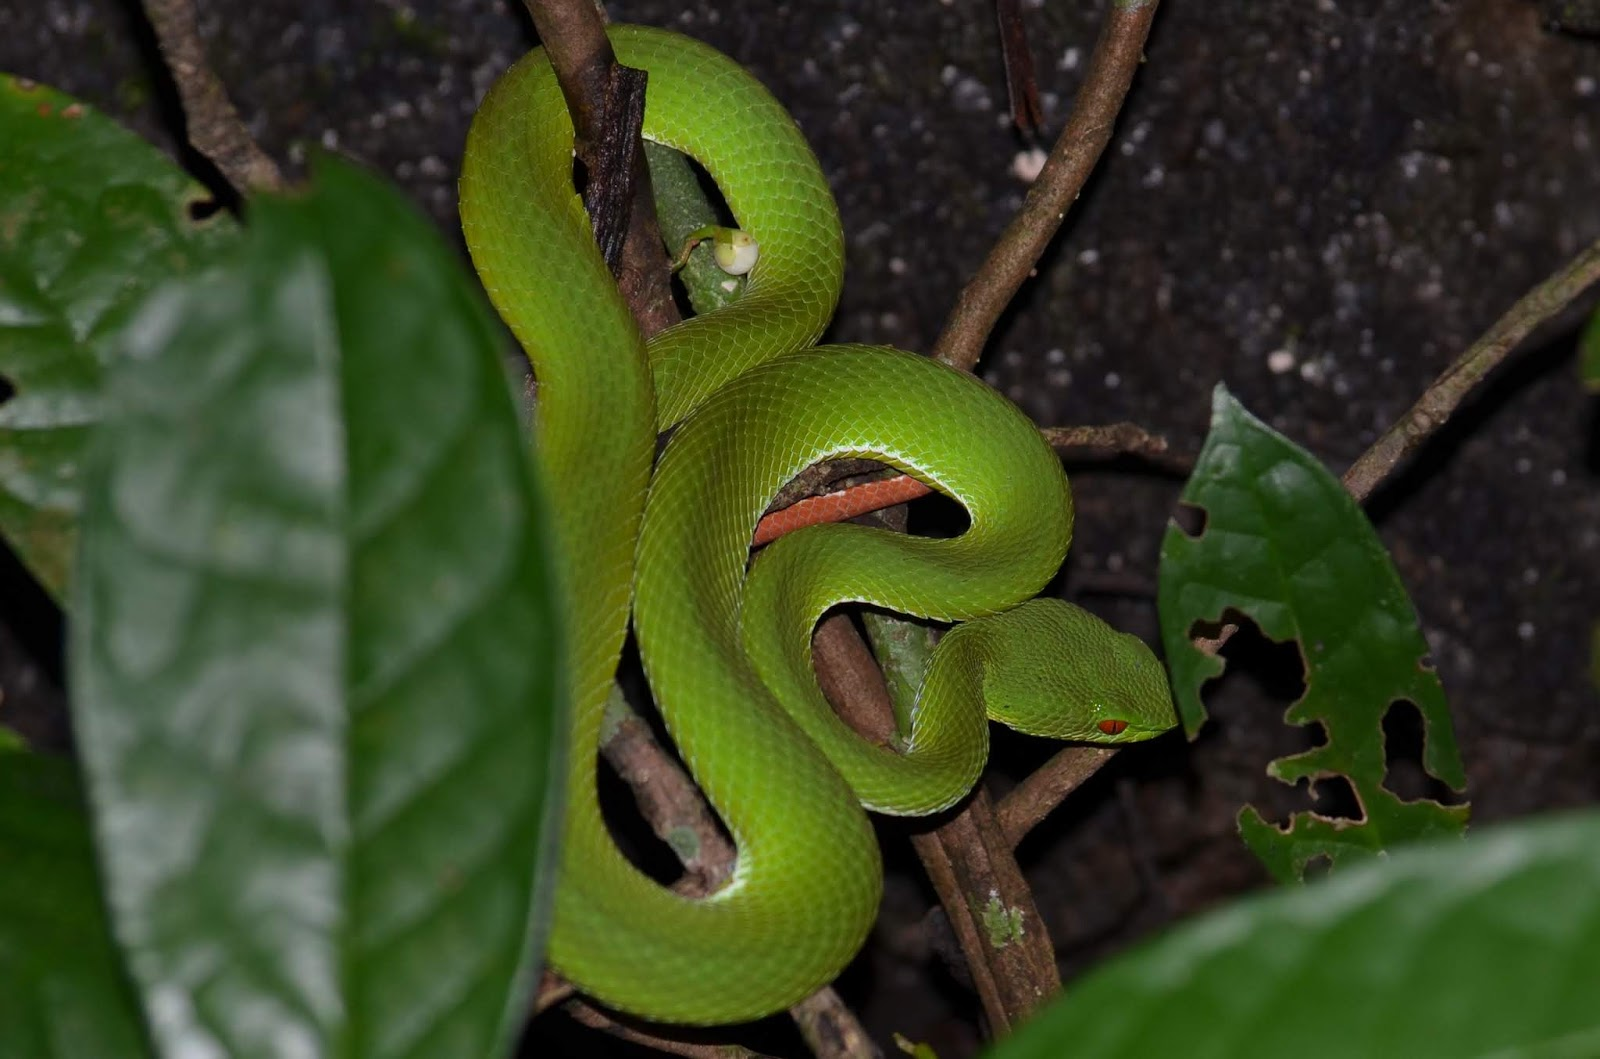 Francis Burlingham Nature And Jungle Adventures With A Camera In South East Asia Cat Tien Np Vietnam And The Ruby Eyed Pit Viper